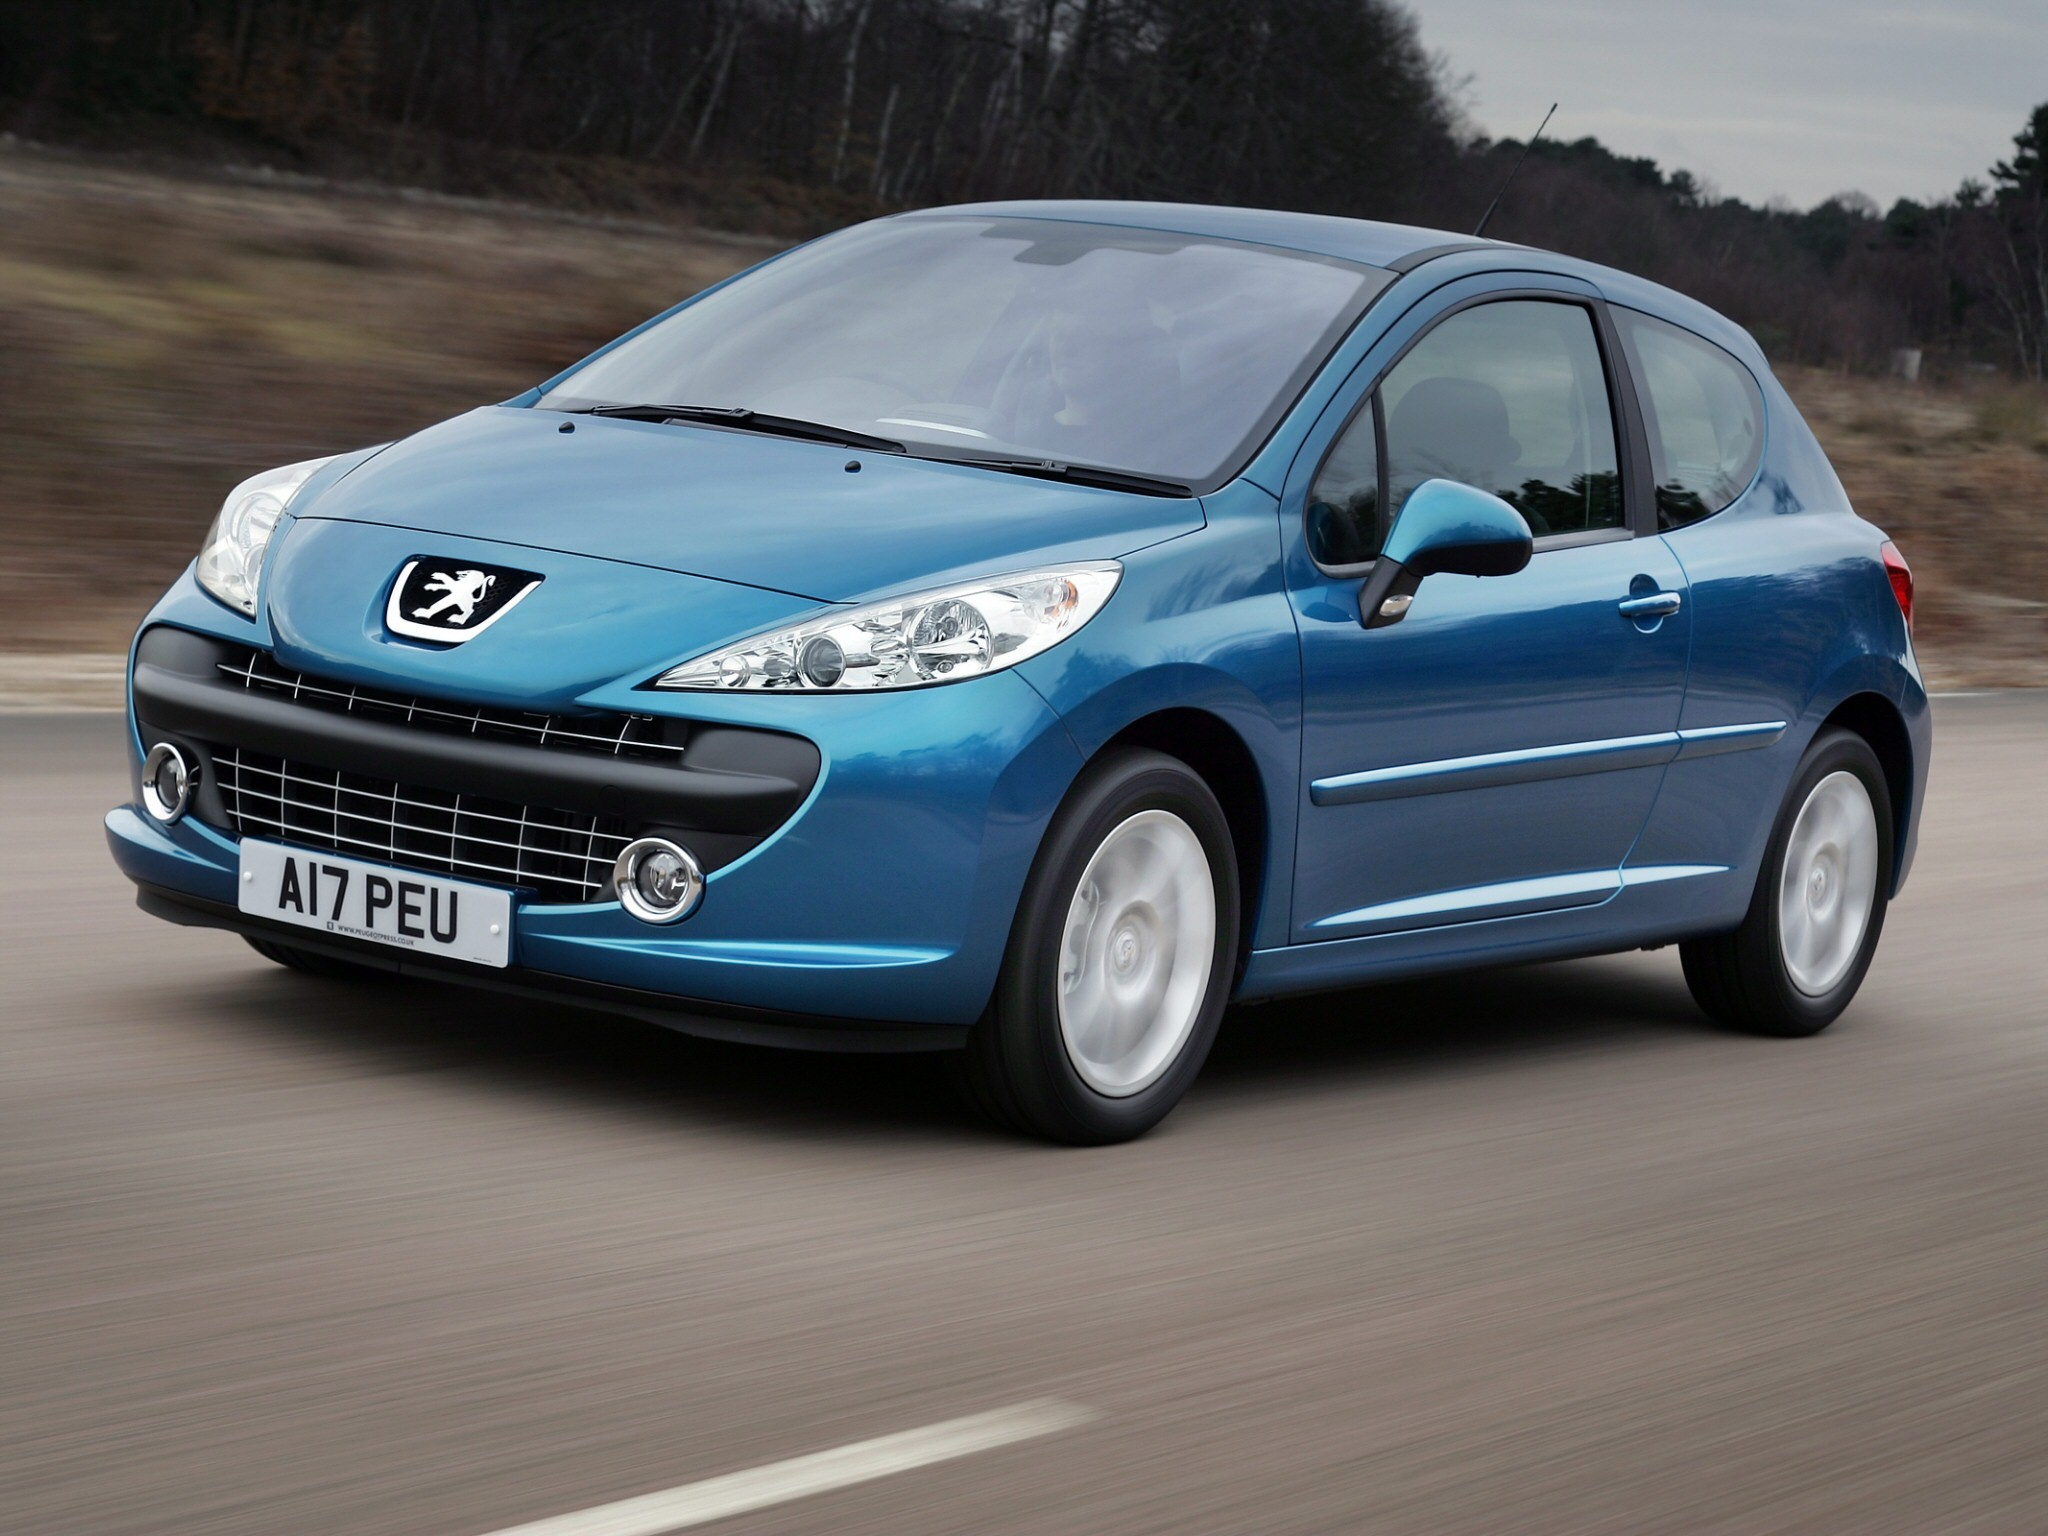 peugeot 207 3 doors specs 2006 2007 2008 2009 autoevolution. Black Bedroom Furniture Sets. Home Design Ideas